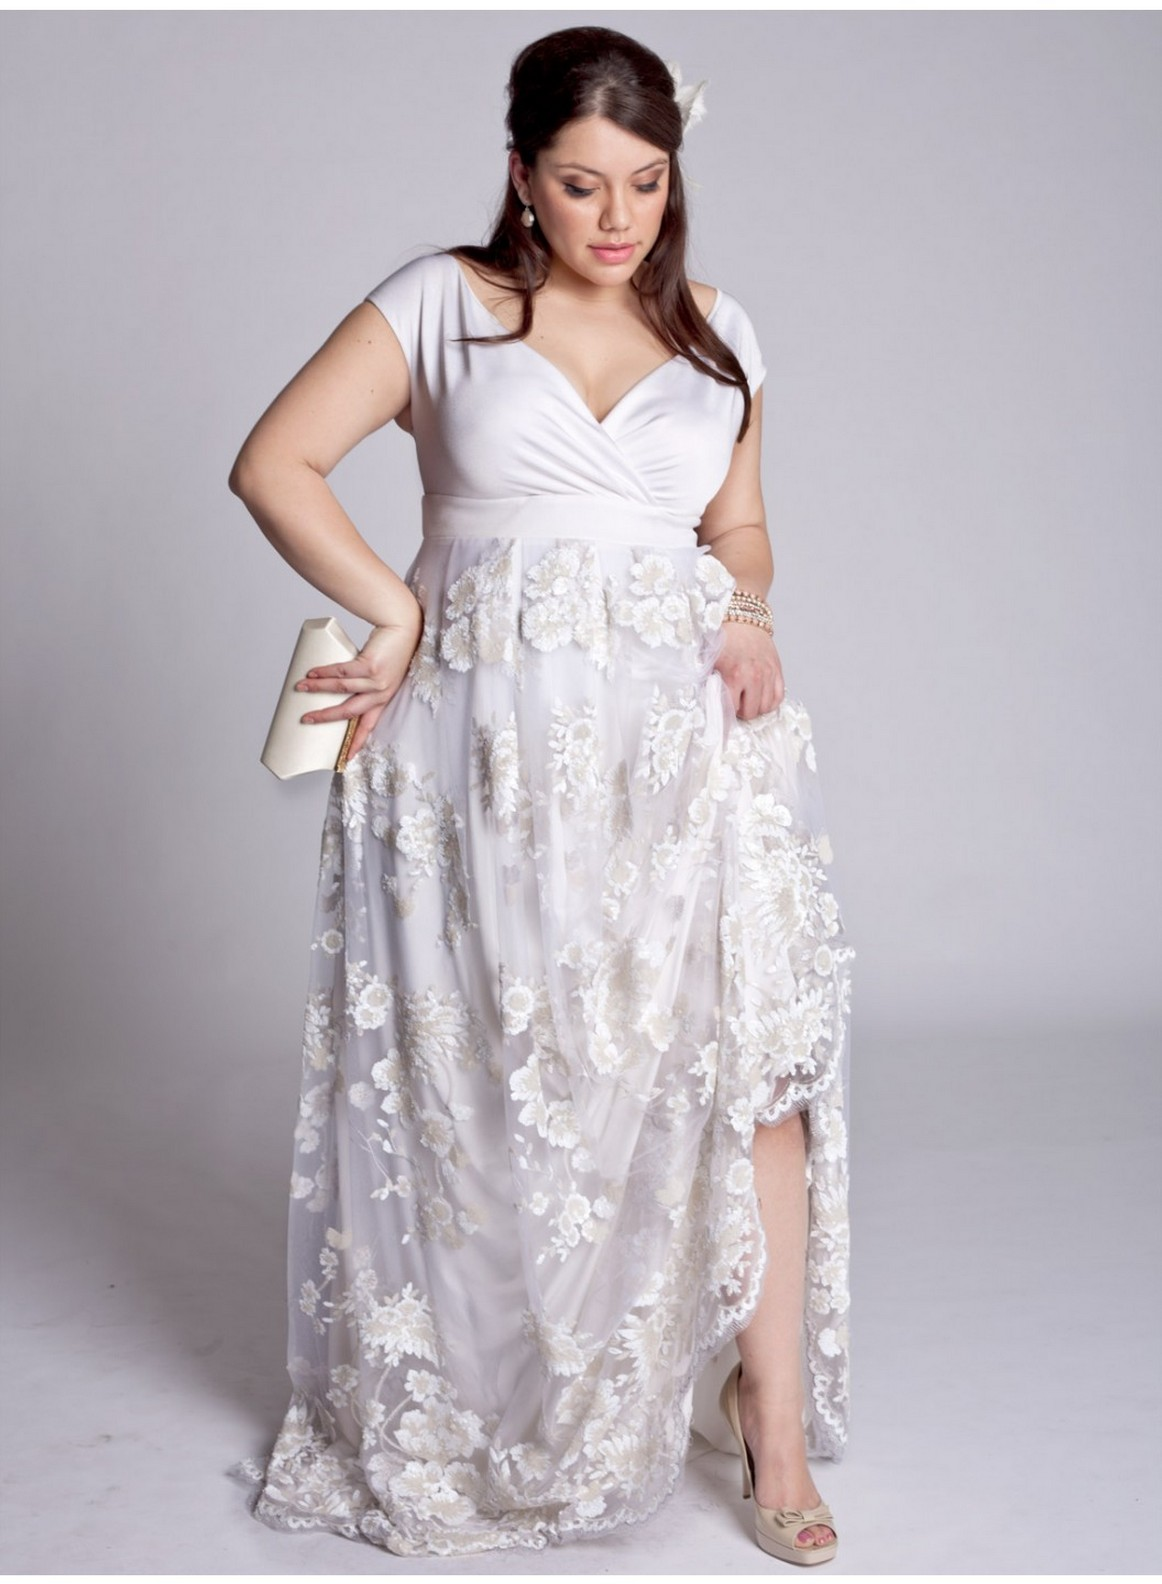 Plus Size White Dress: Plus size white maxi dresses for women